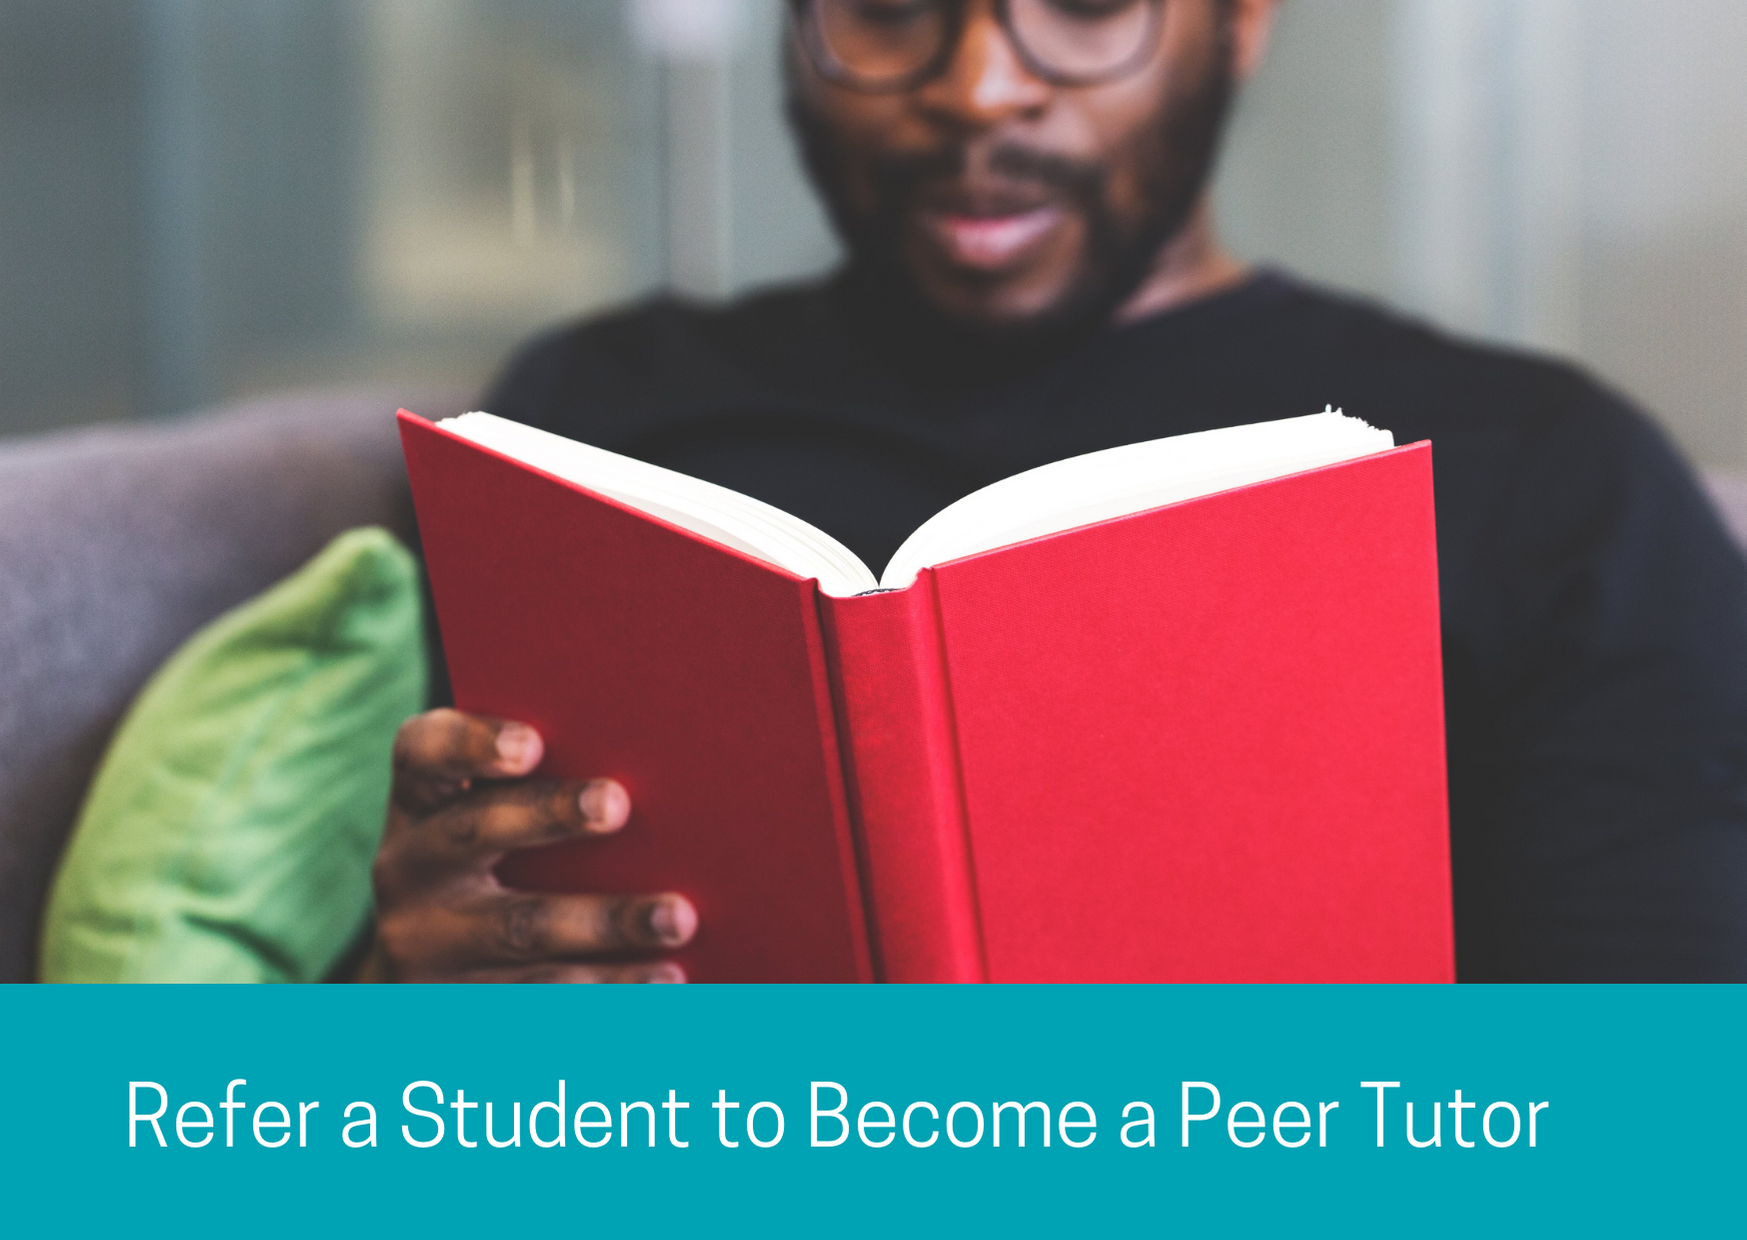 Refer a Student to Become a Peer Tutor